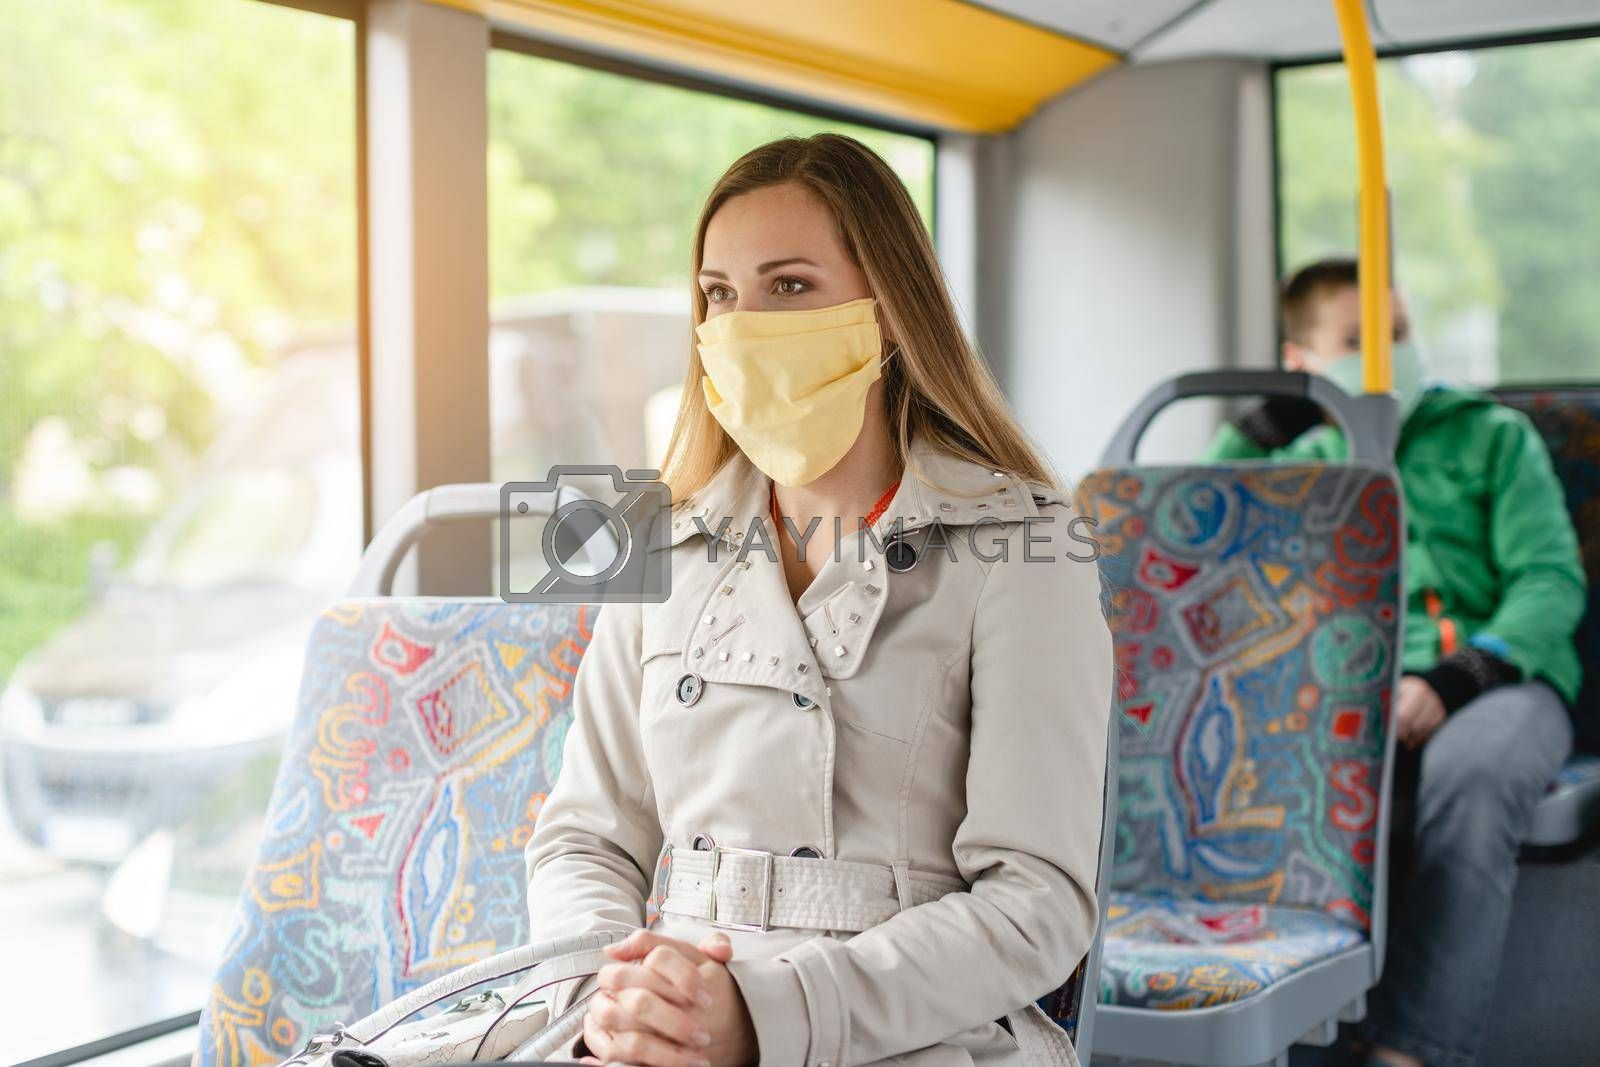 Royalty free image of Woman using public transport during covid-19 crisis by Kzenon